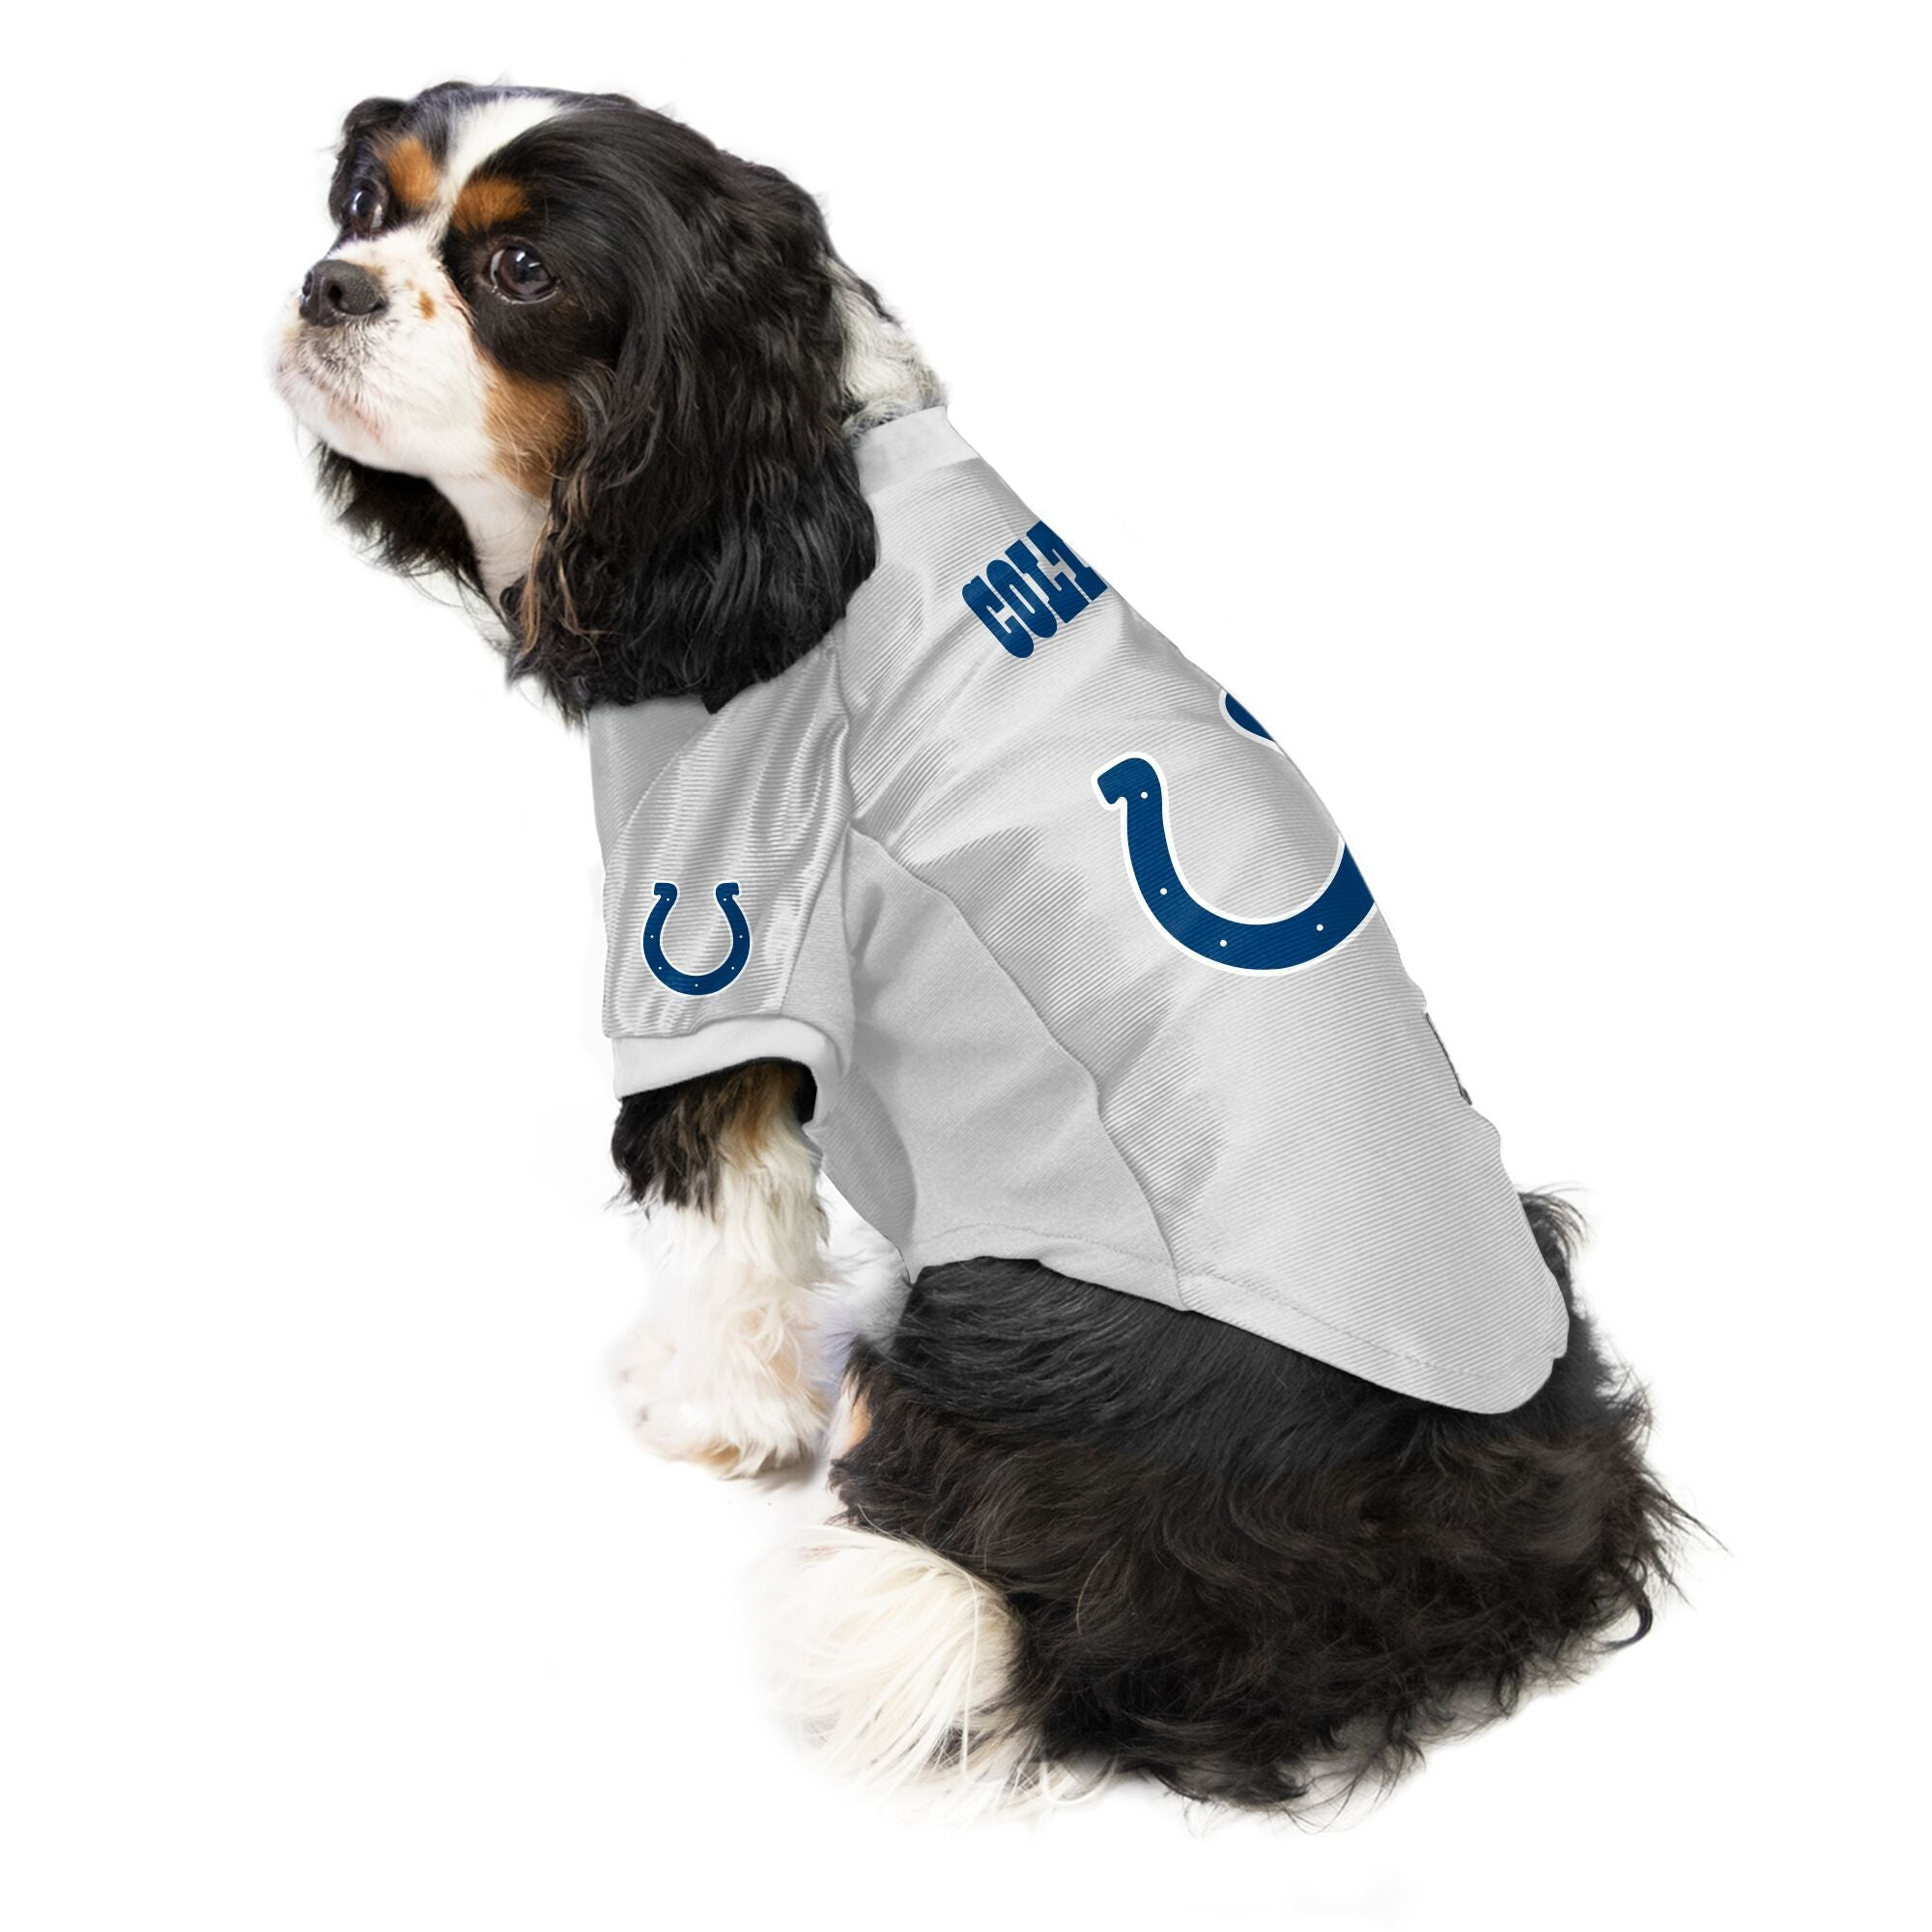 Colts outfit for dogs